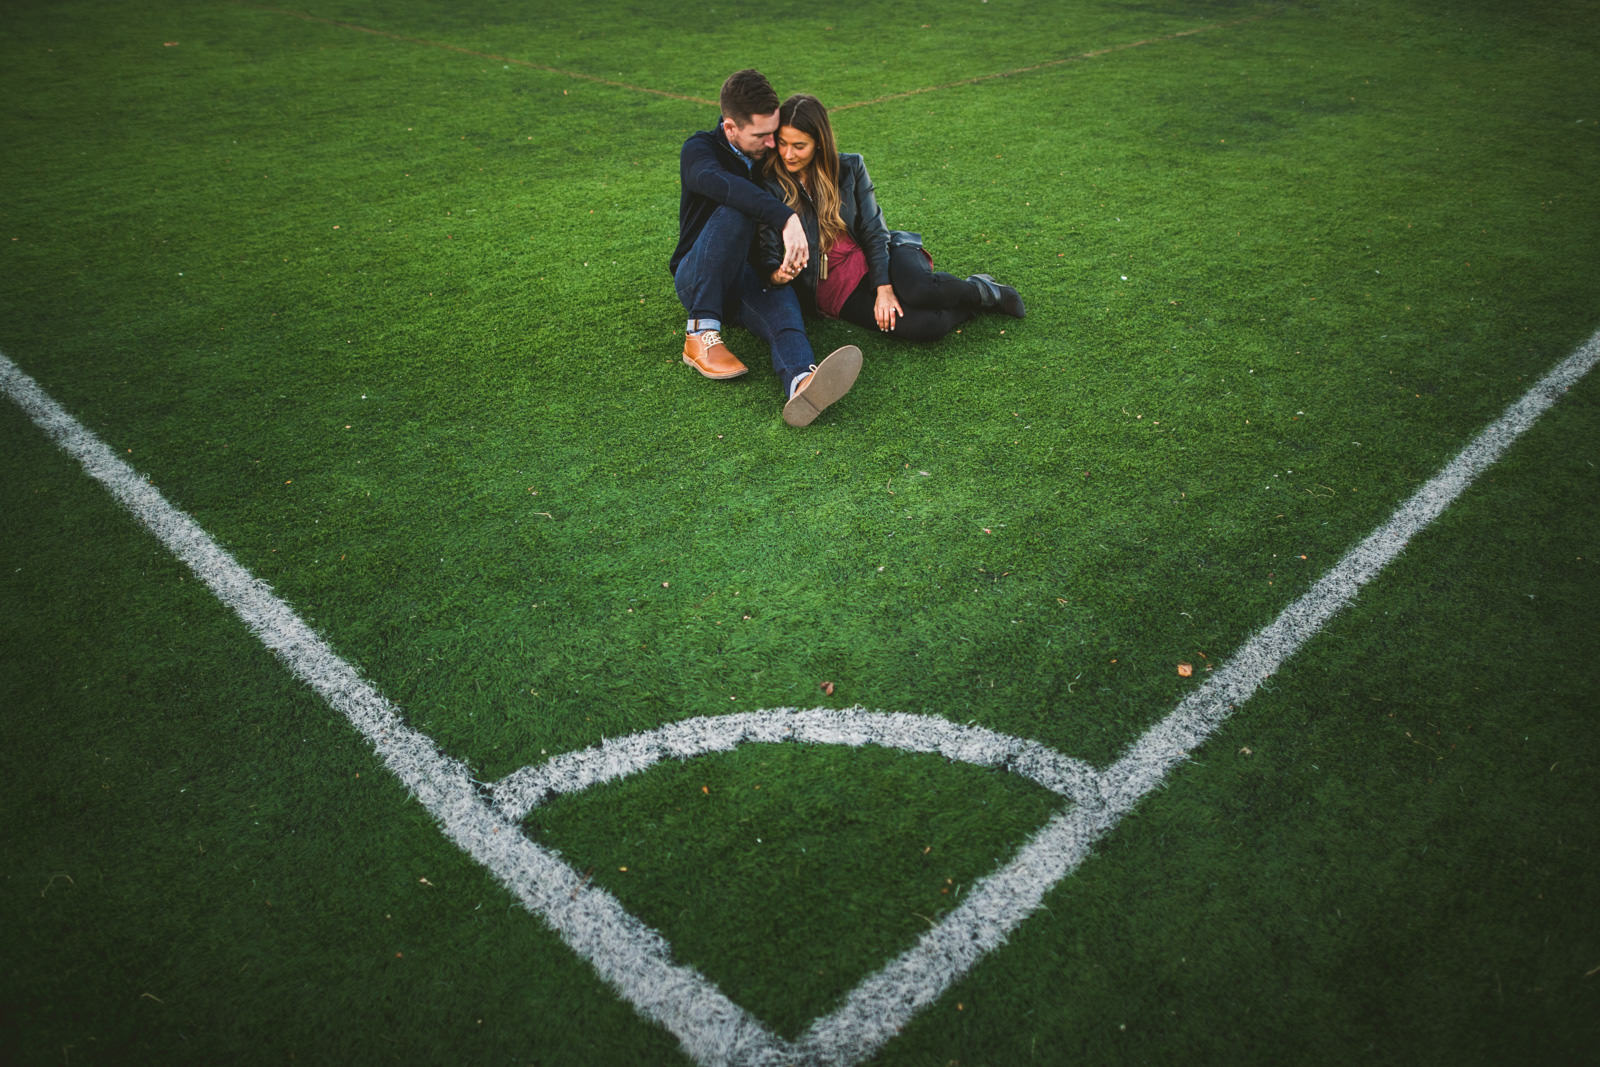 04-creative-soccer-engagement-pics